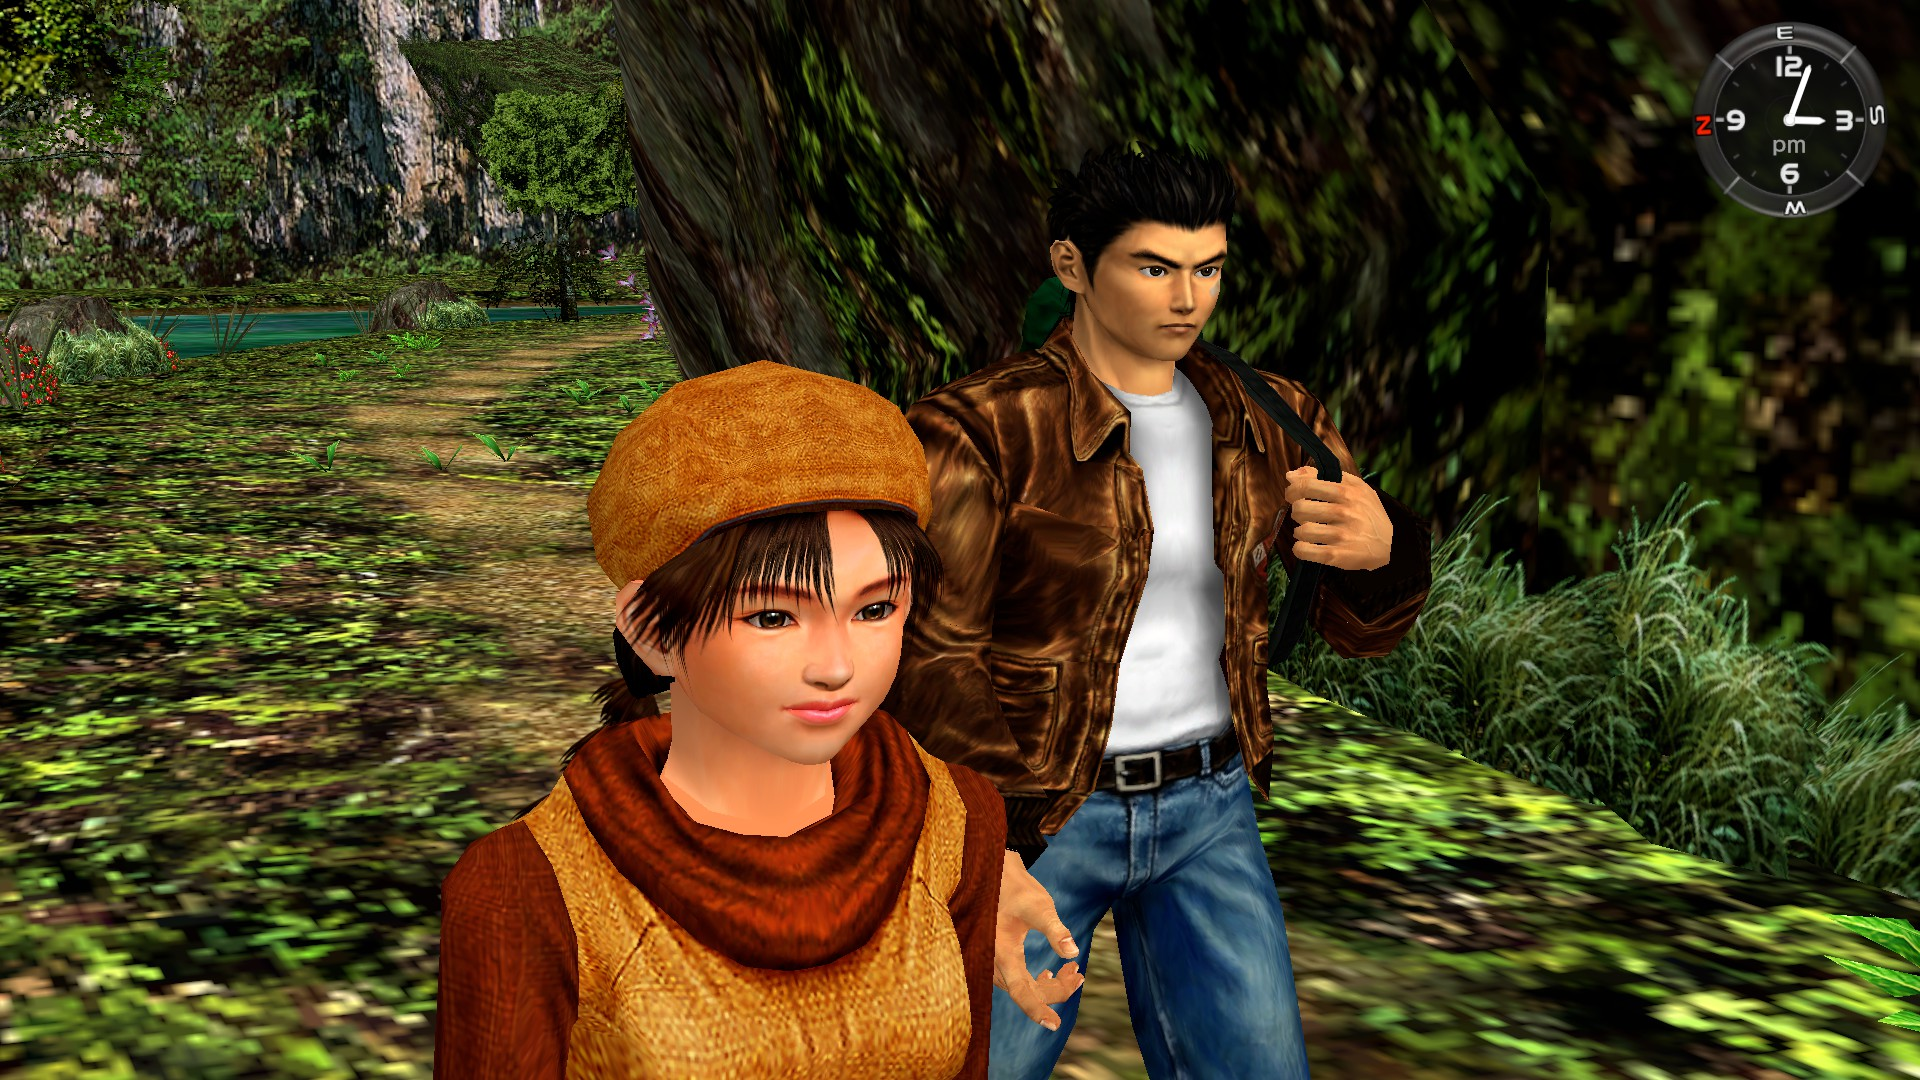 Shenmue_II_Meeting_Shenhua_First_Time_35_1523616633